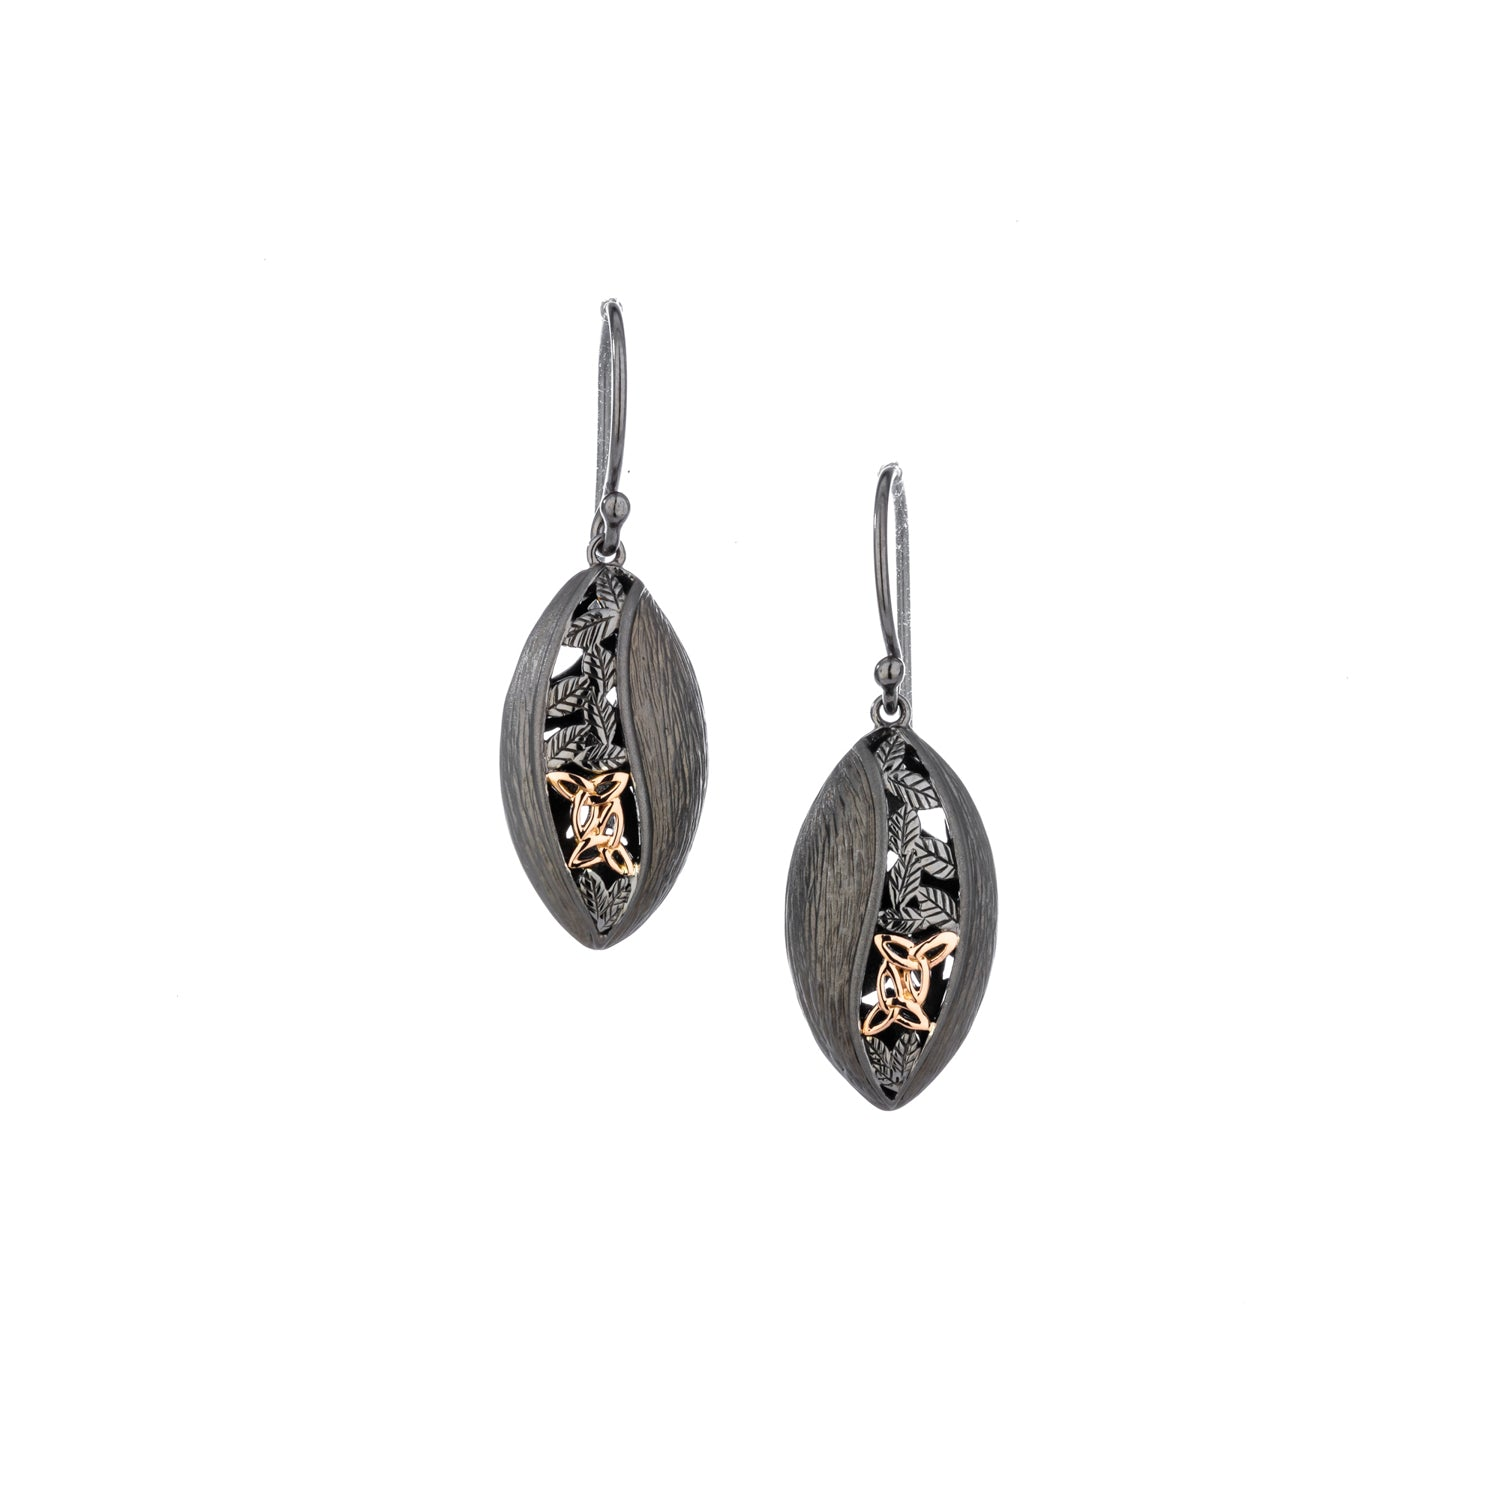 Earrings Ruthenium 10k Rose Trinity Leaf Hook Earrings from welch and company jewelers near syracuse ny